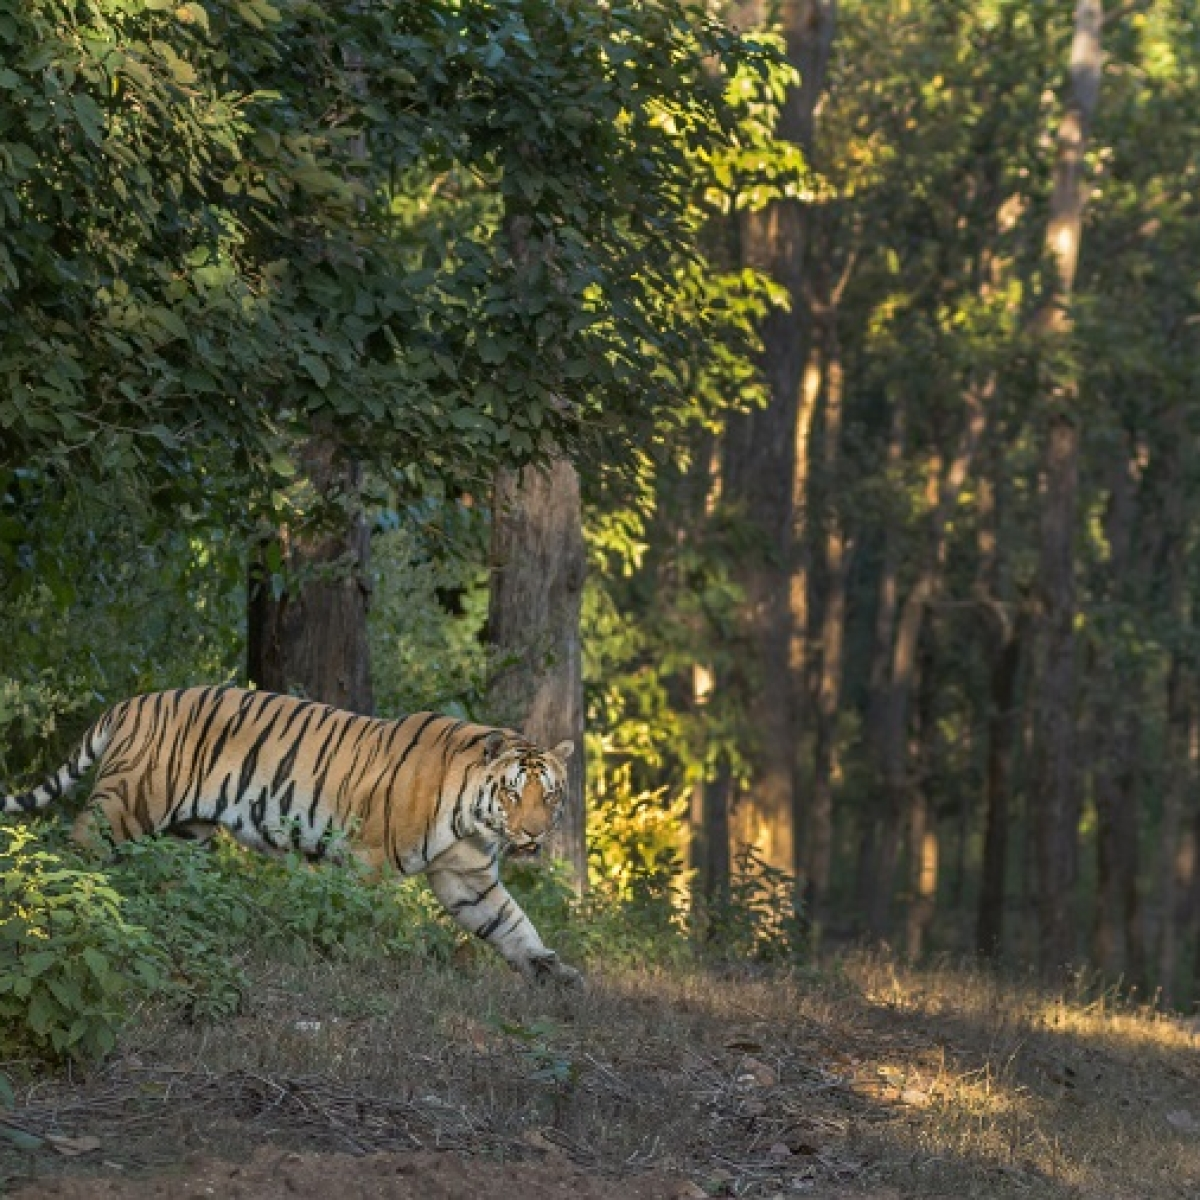 Lessons from the world of tigers – Looking at the coronavirus quarantine through a wildlife photographer's lens